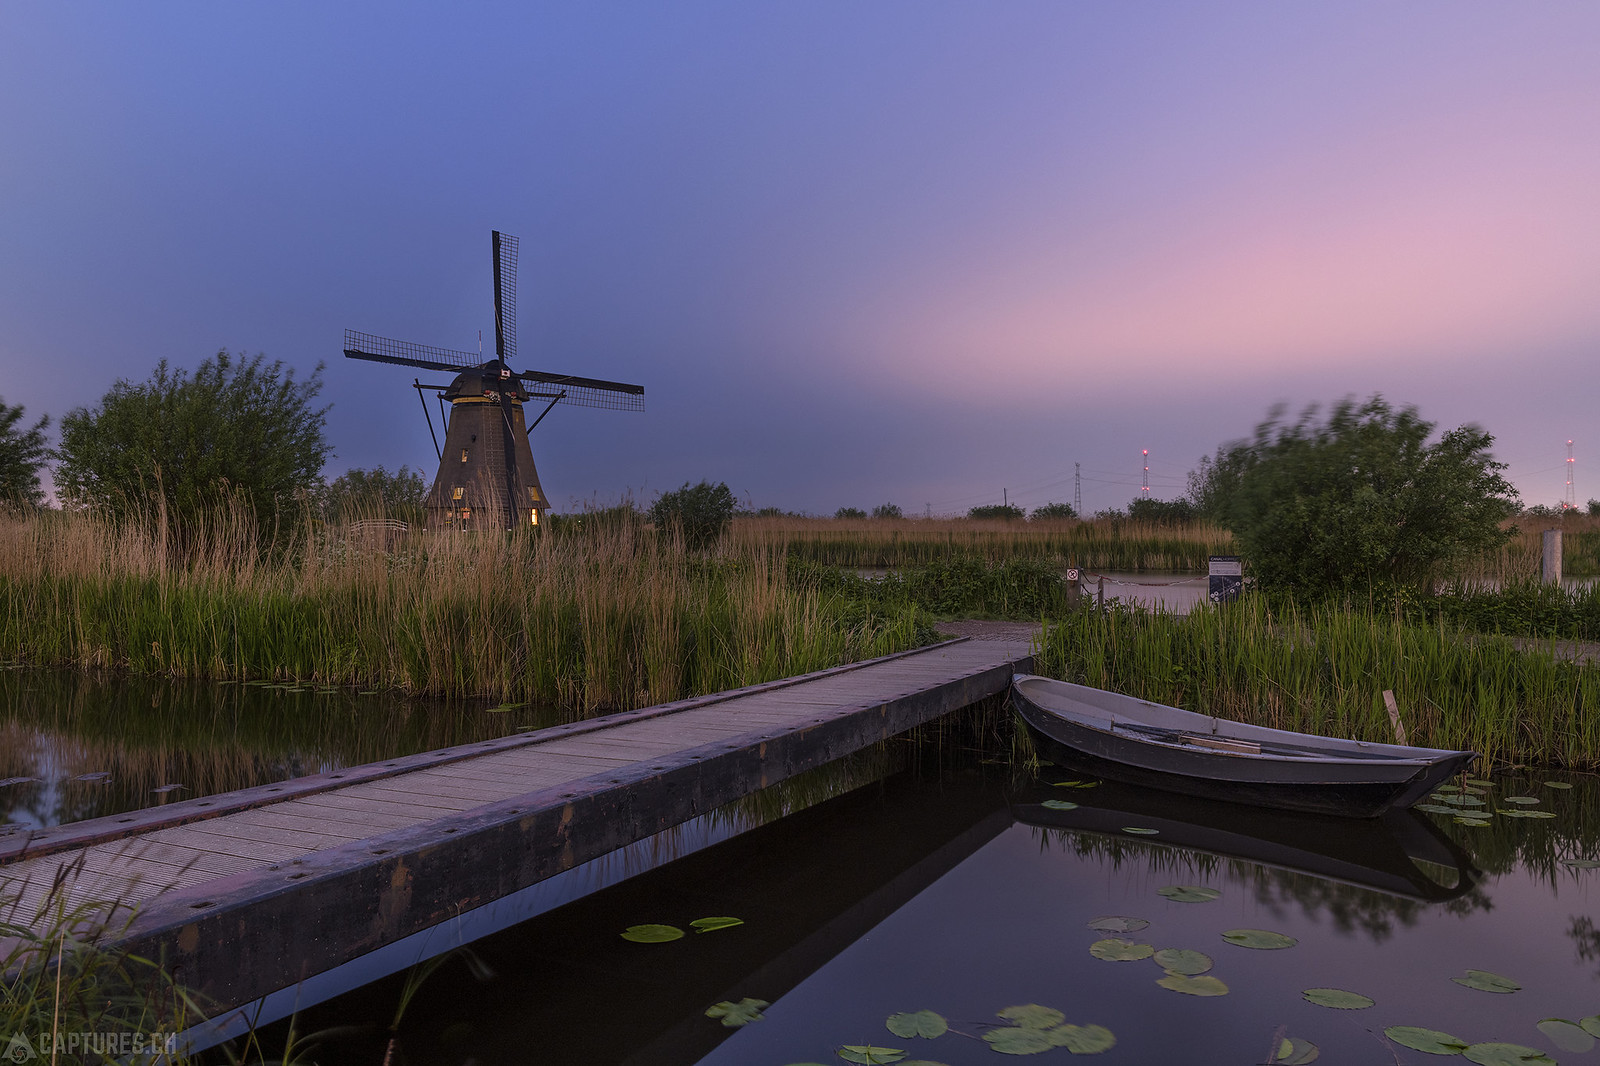 Boat and winmill - Kinderdijk